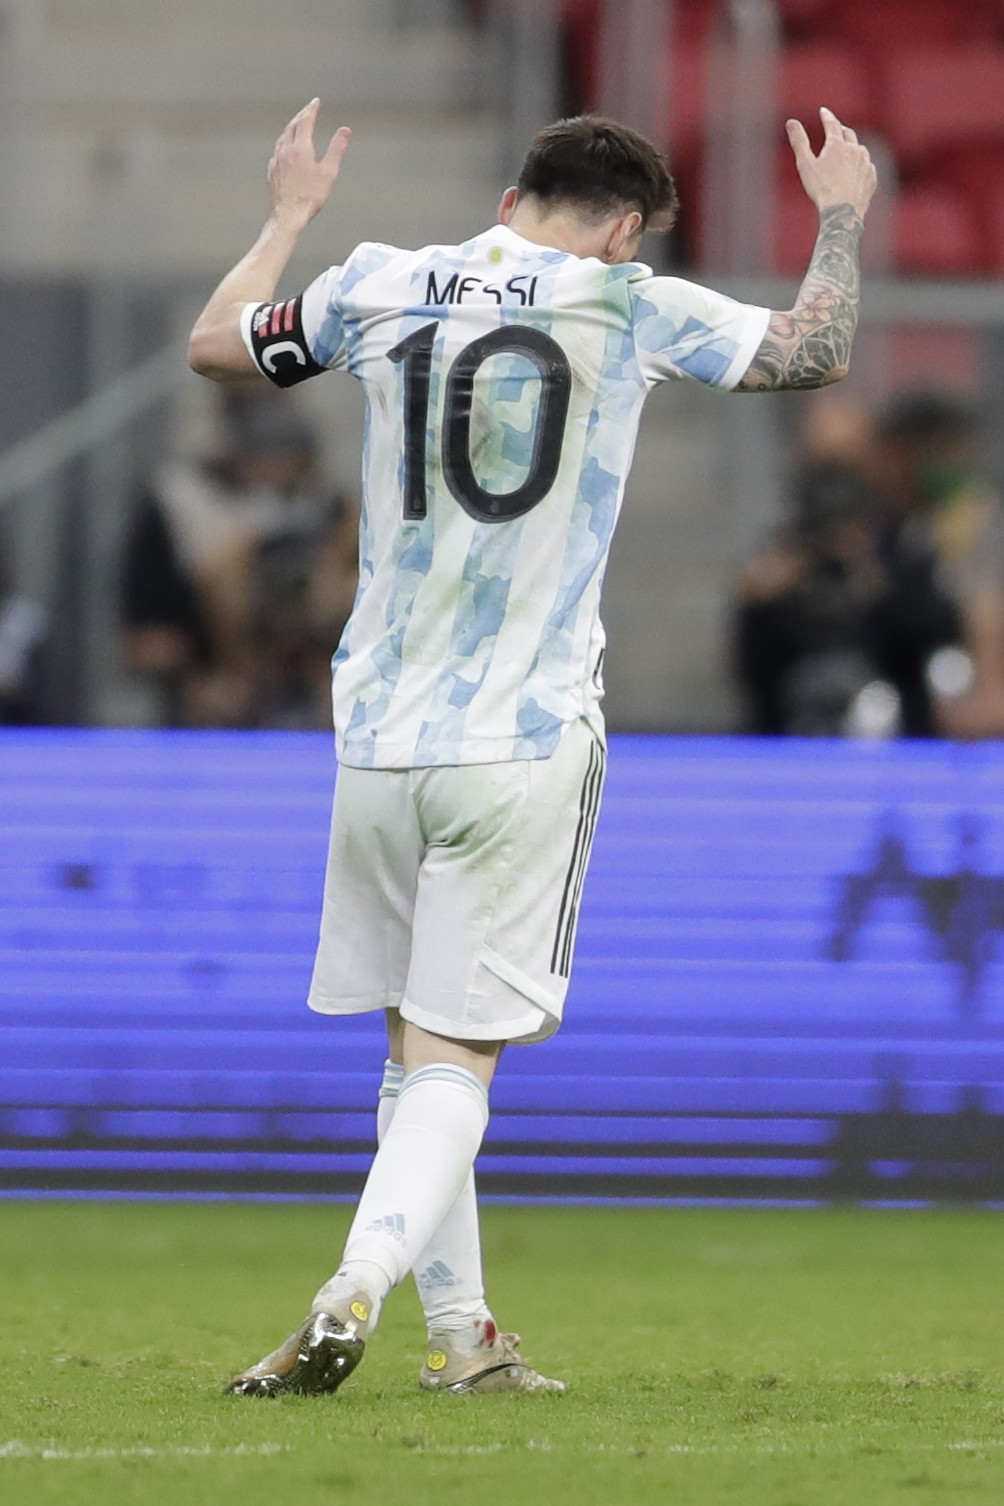 Blood is seen in an ankle of Argentina's Lionel Messi as he reacts during a Copa America semifinal soccer match against Colombia at the National stadi...